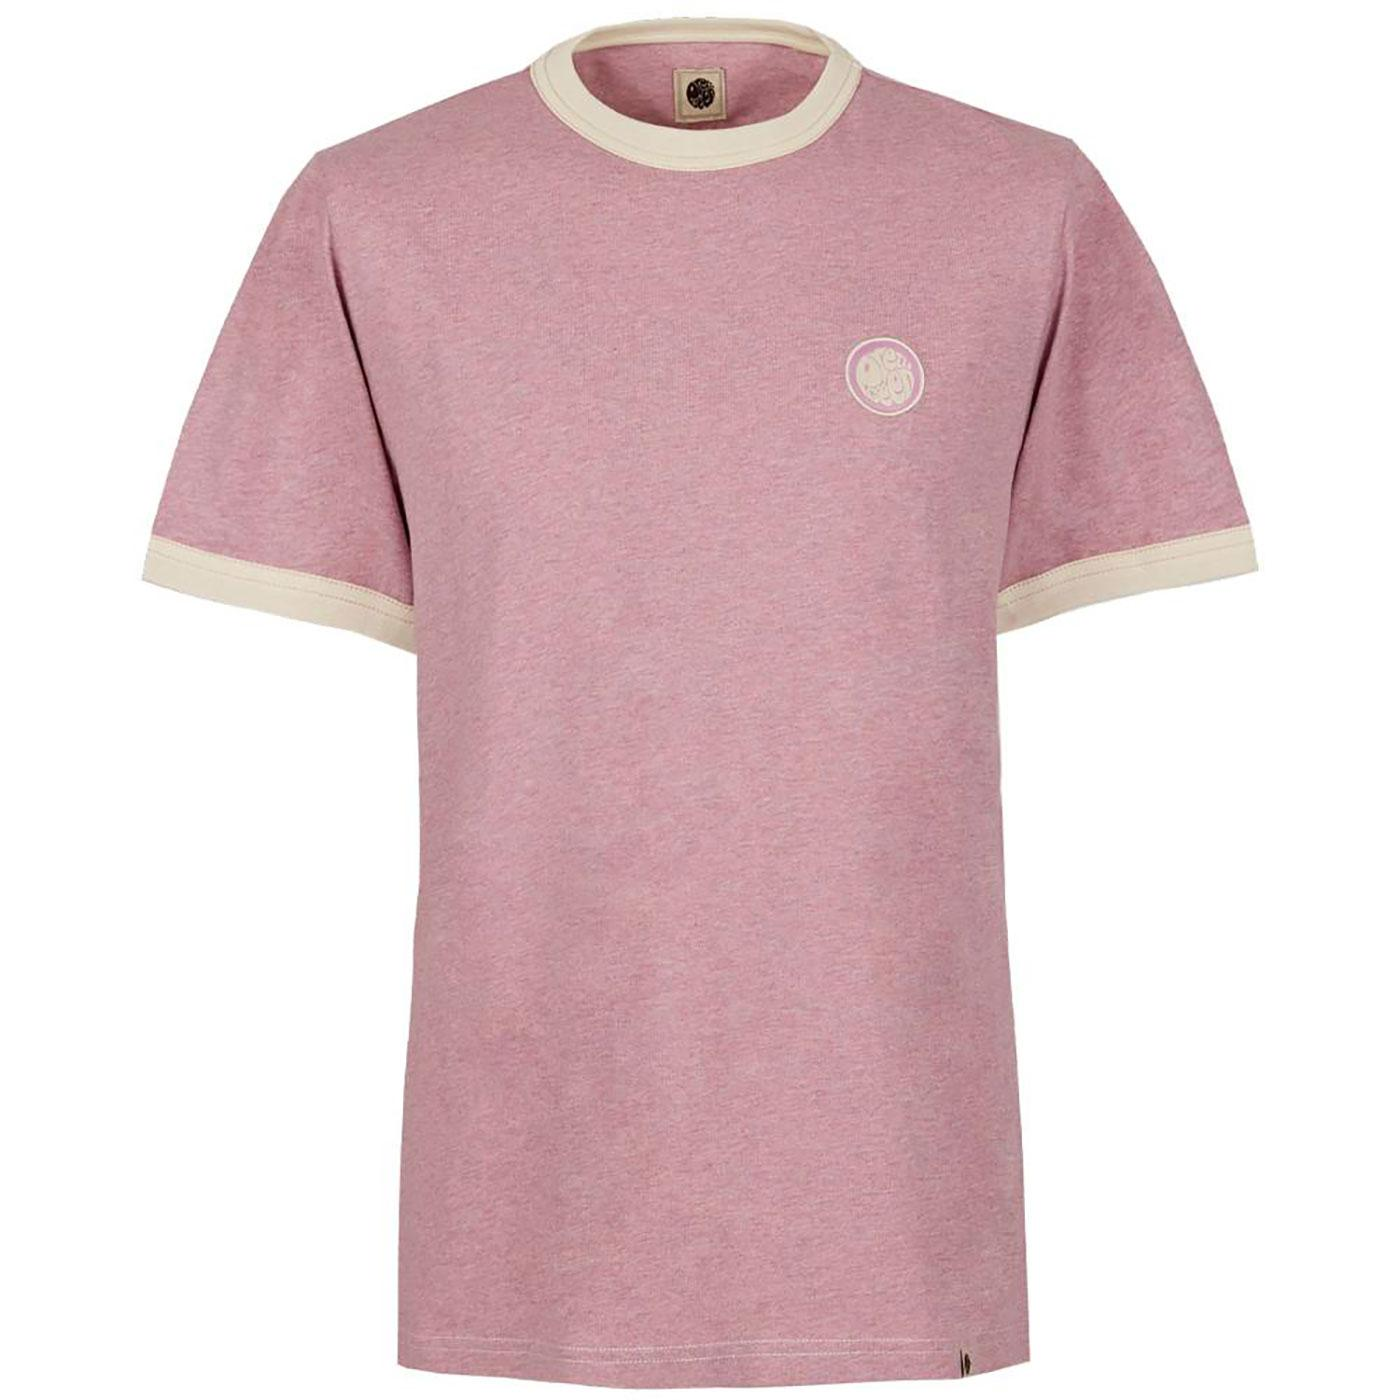 PRETTY GREEN Retro Sixties Badge Ringer Tee PINK